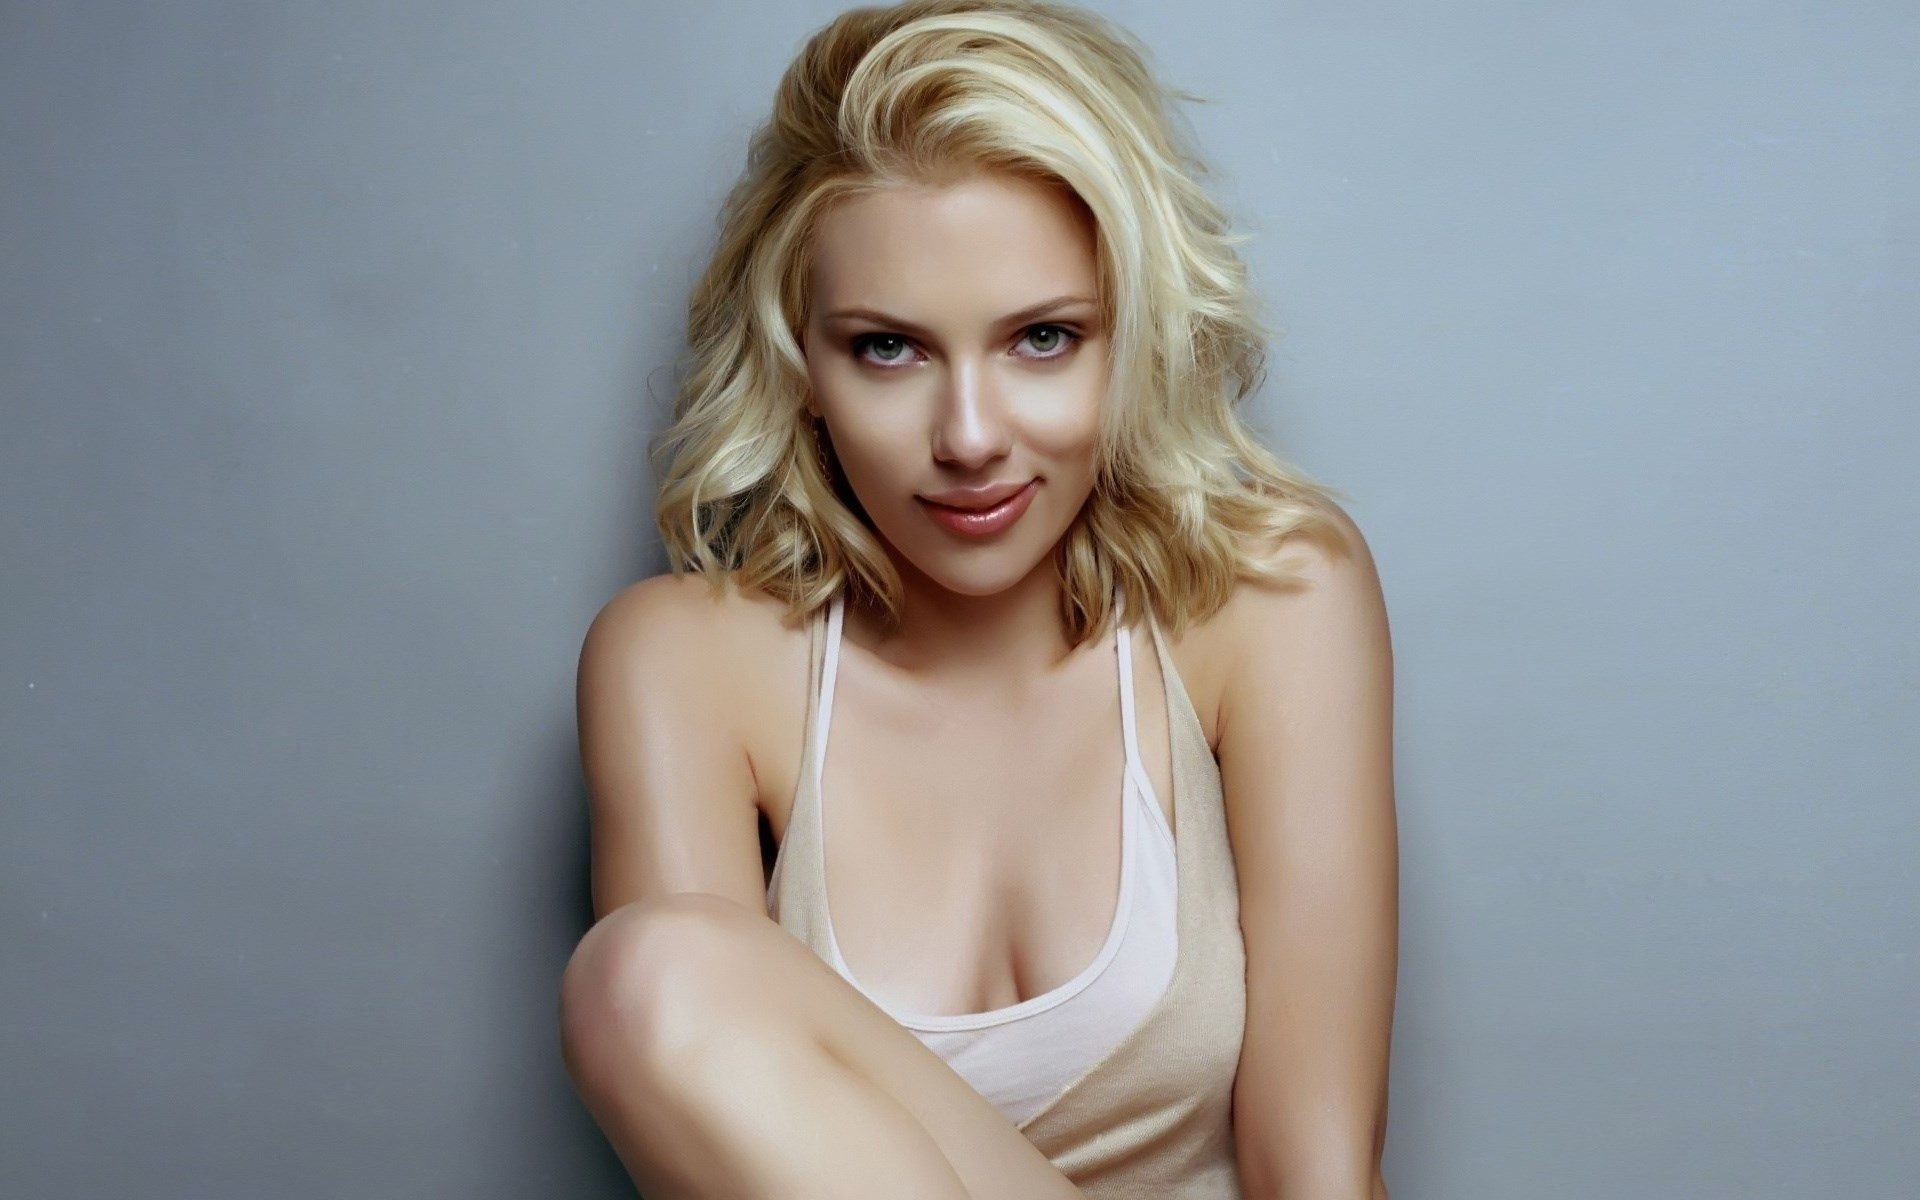 1920x1200 scarlett johansson wallpaper hd pc download | Scarlett johansson,  Beauty, Scarlett johanson